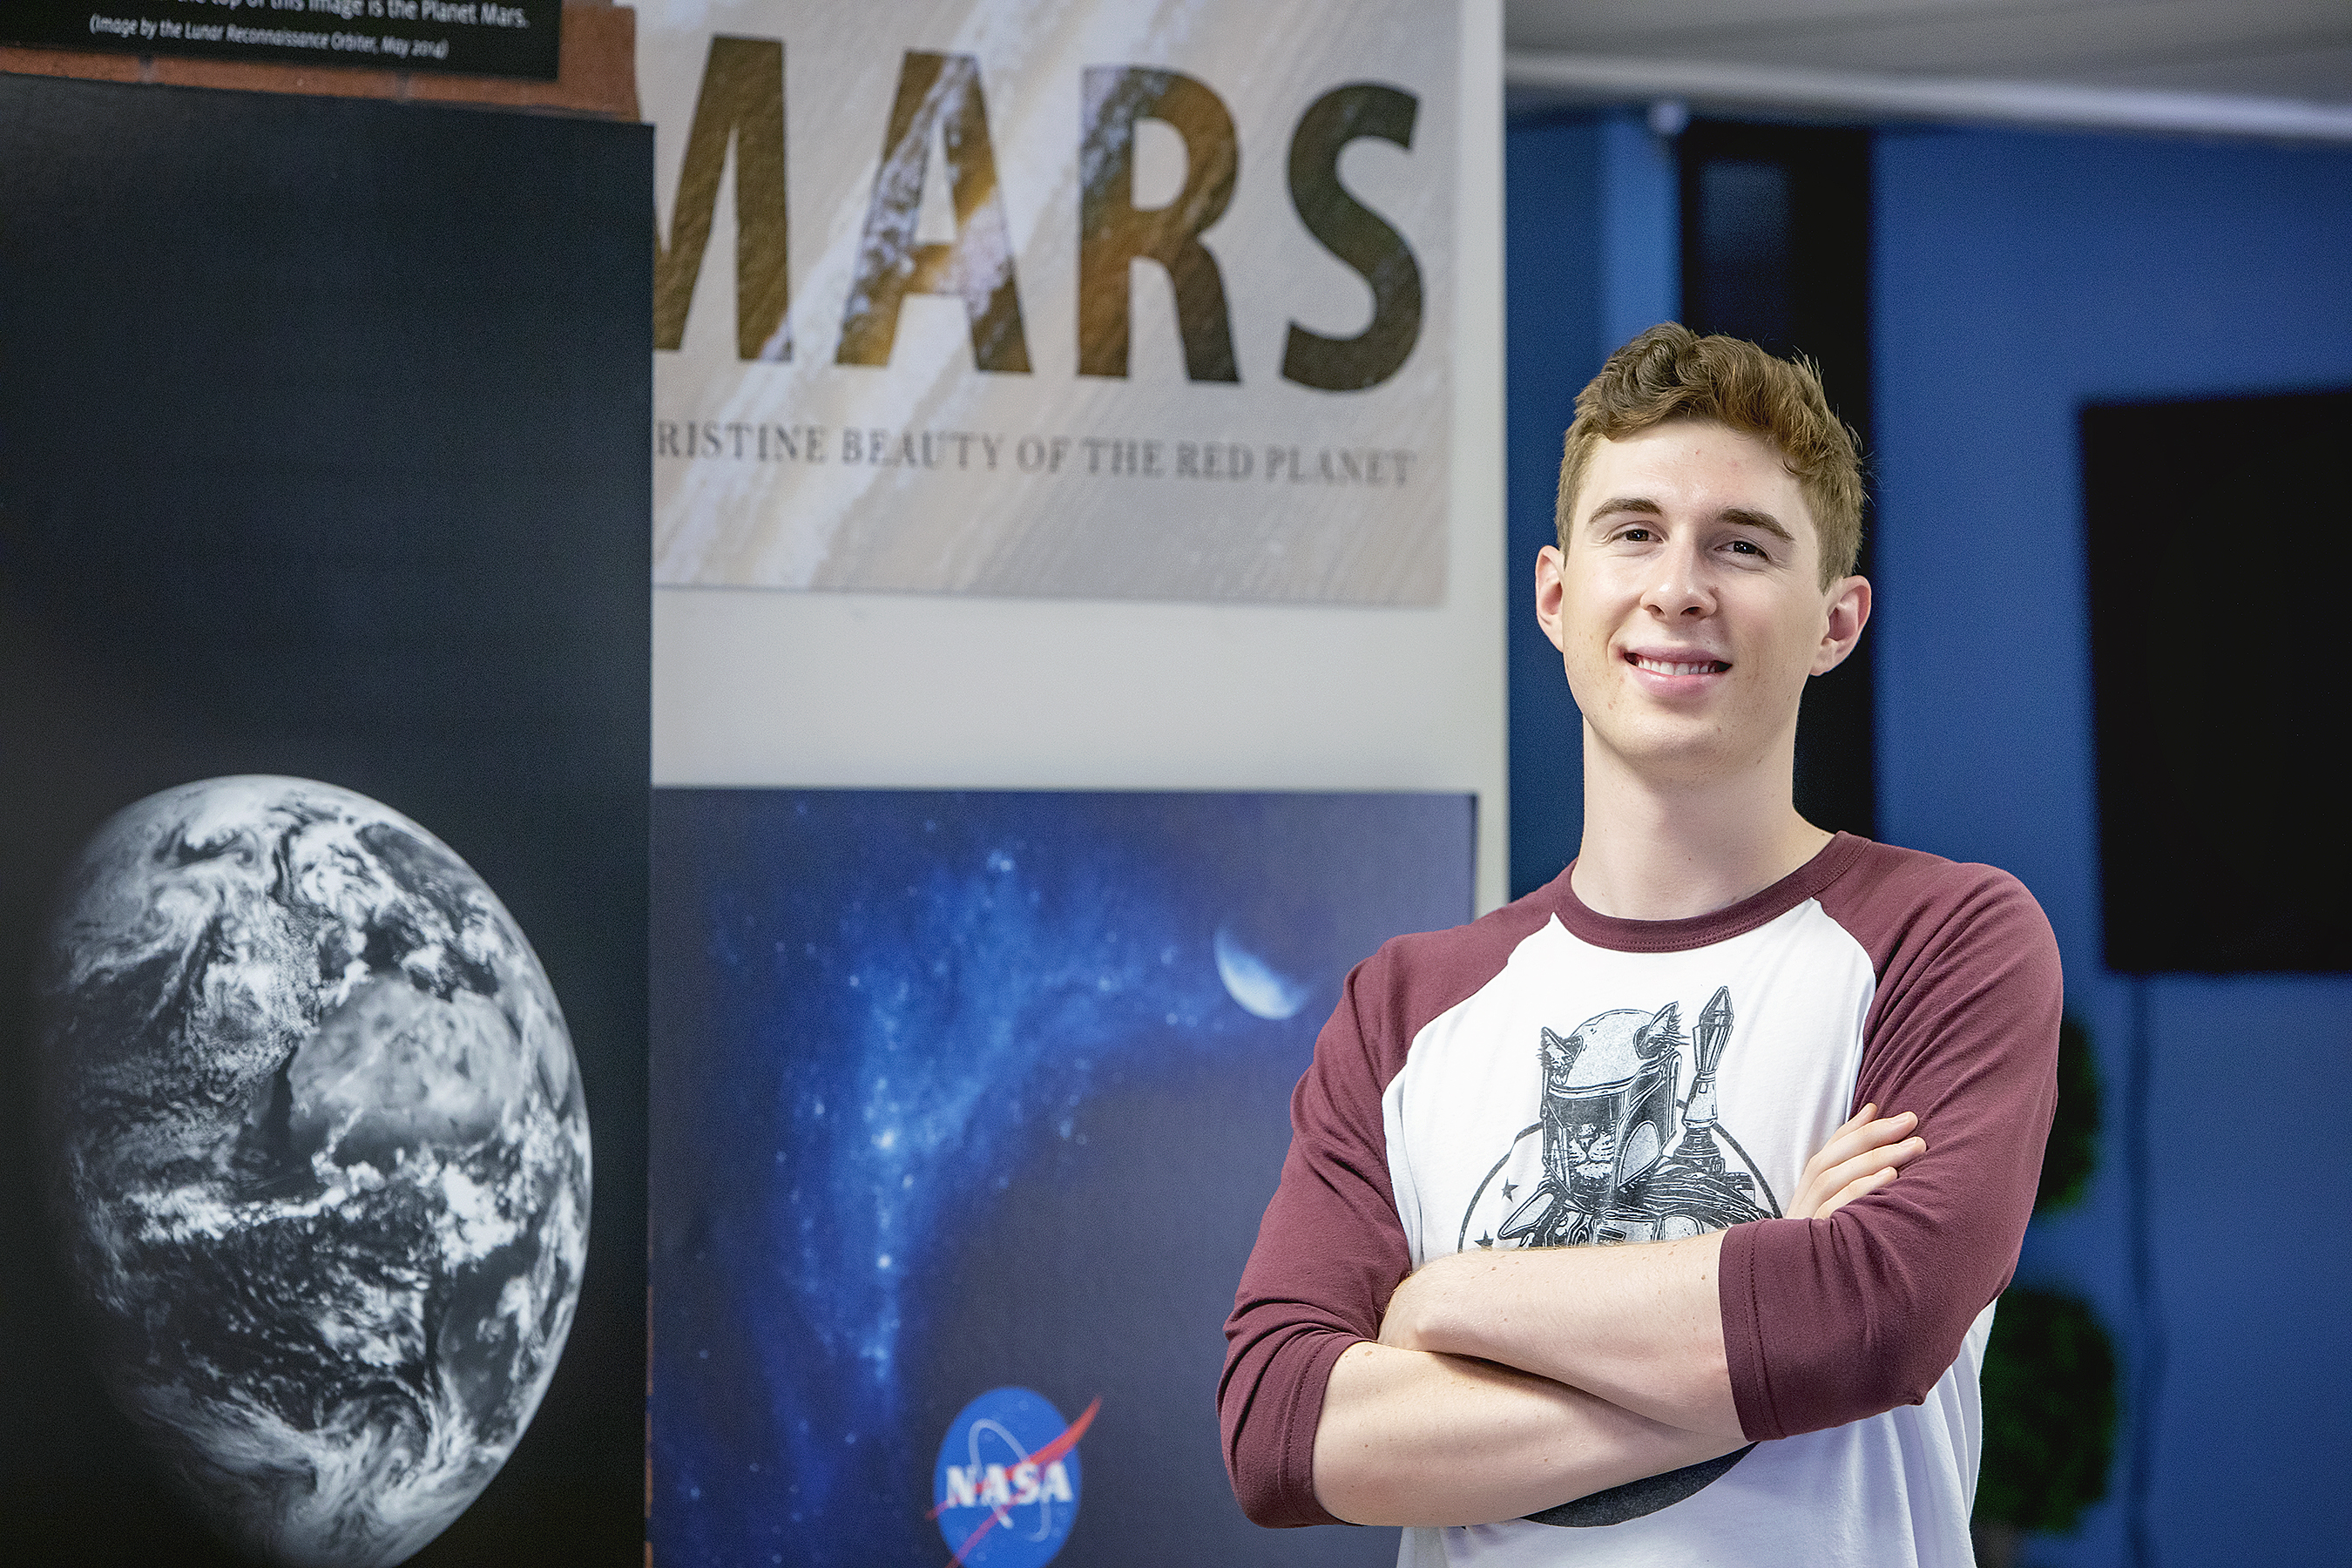 UA undergraduate student Gordon Downs is helping develop new ways to analyze data from the NASA Curiosity mars rover as a collaborator on the Mars Science Laboratory science team.